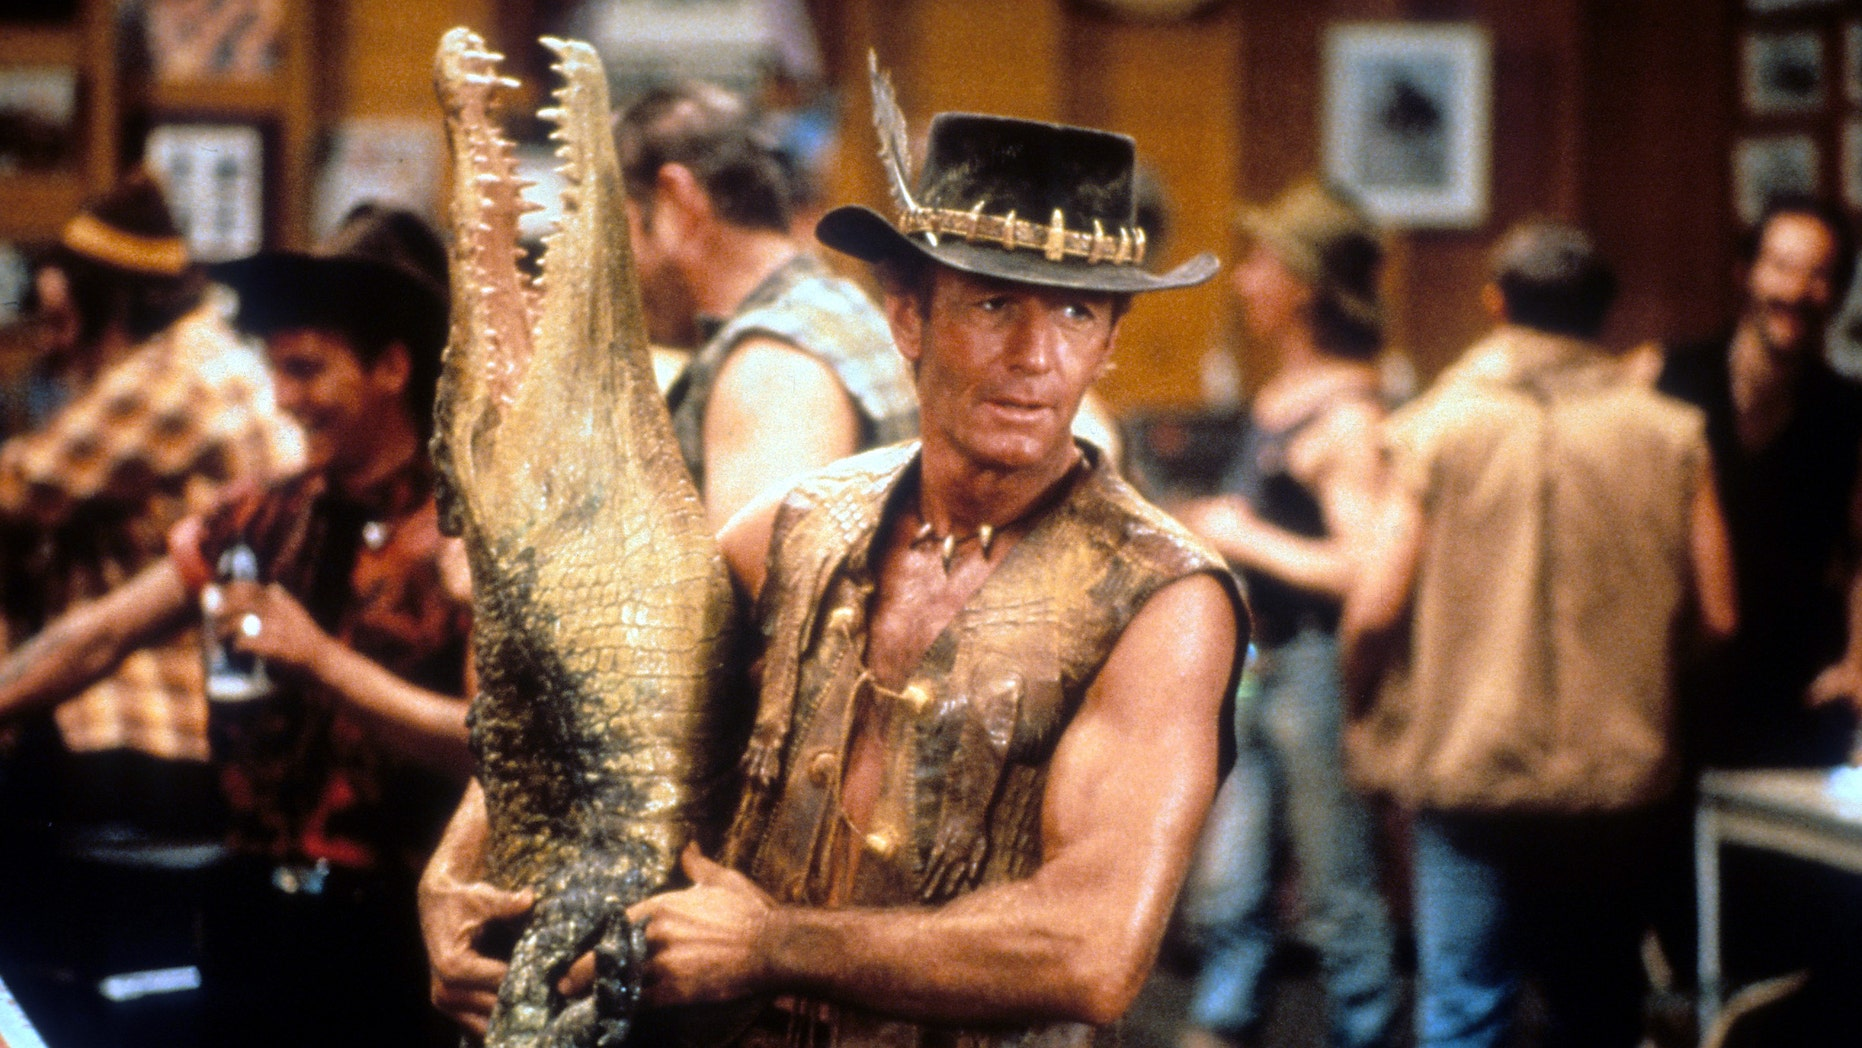 Paul Hogan carrying dead crocodile in bar in a scene from the film 'Crocodile Dundee', 1986. (Photo by Paramount/Getty Images)